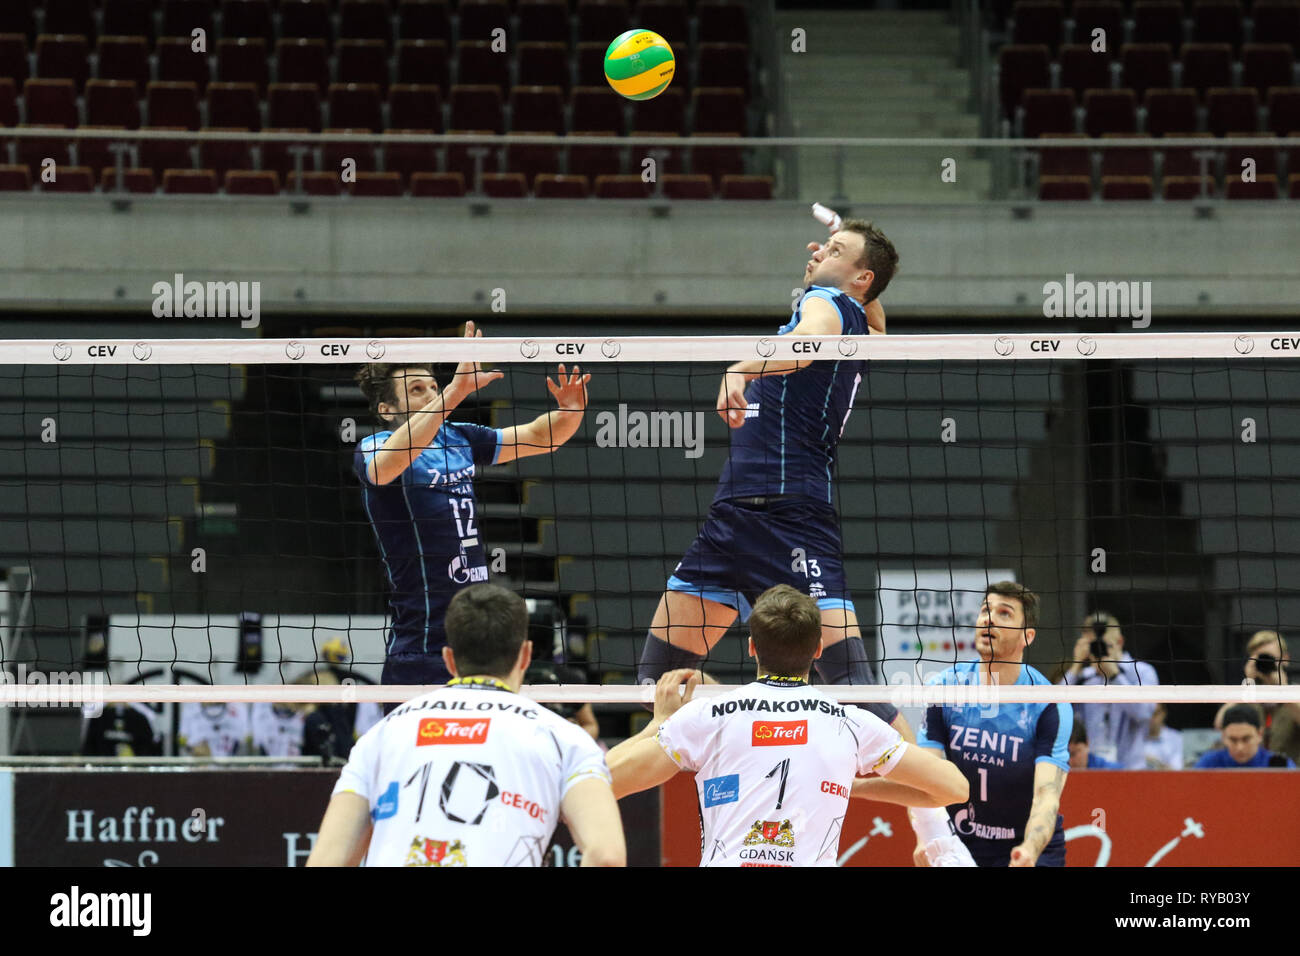 Gdansk, Poland March, 13th. 2019 Trefl Gdansk (Poland) v Zenit Kazan (Russia) CEV Champions League Men - Quarter Finals volleyball game. ALEXEY SAMOYLENKO (13) of Zenit-Kazan is seen in action against NIKOLA MIJAILOVIC (10) of Trefl Gdansk © Vadim Pacajev / Alamy Live News Stock Photo